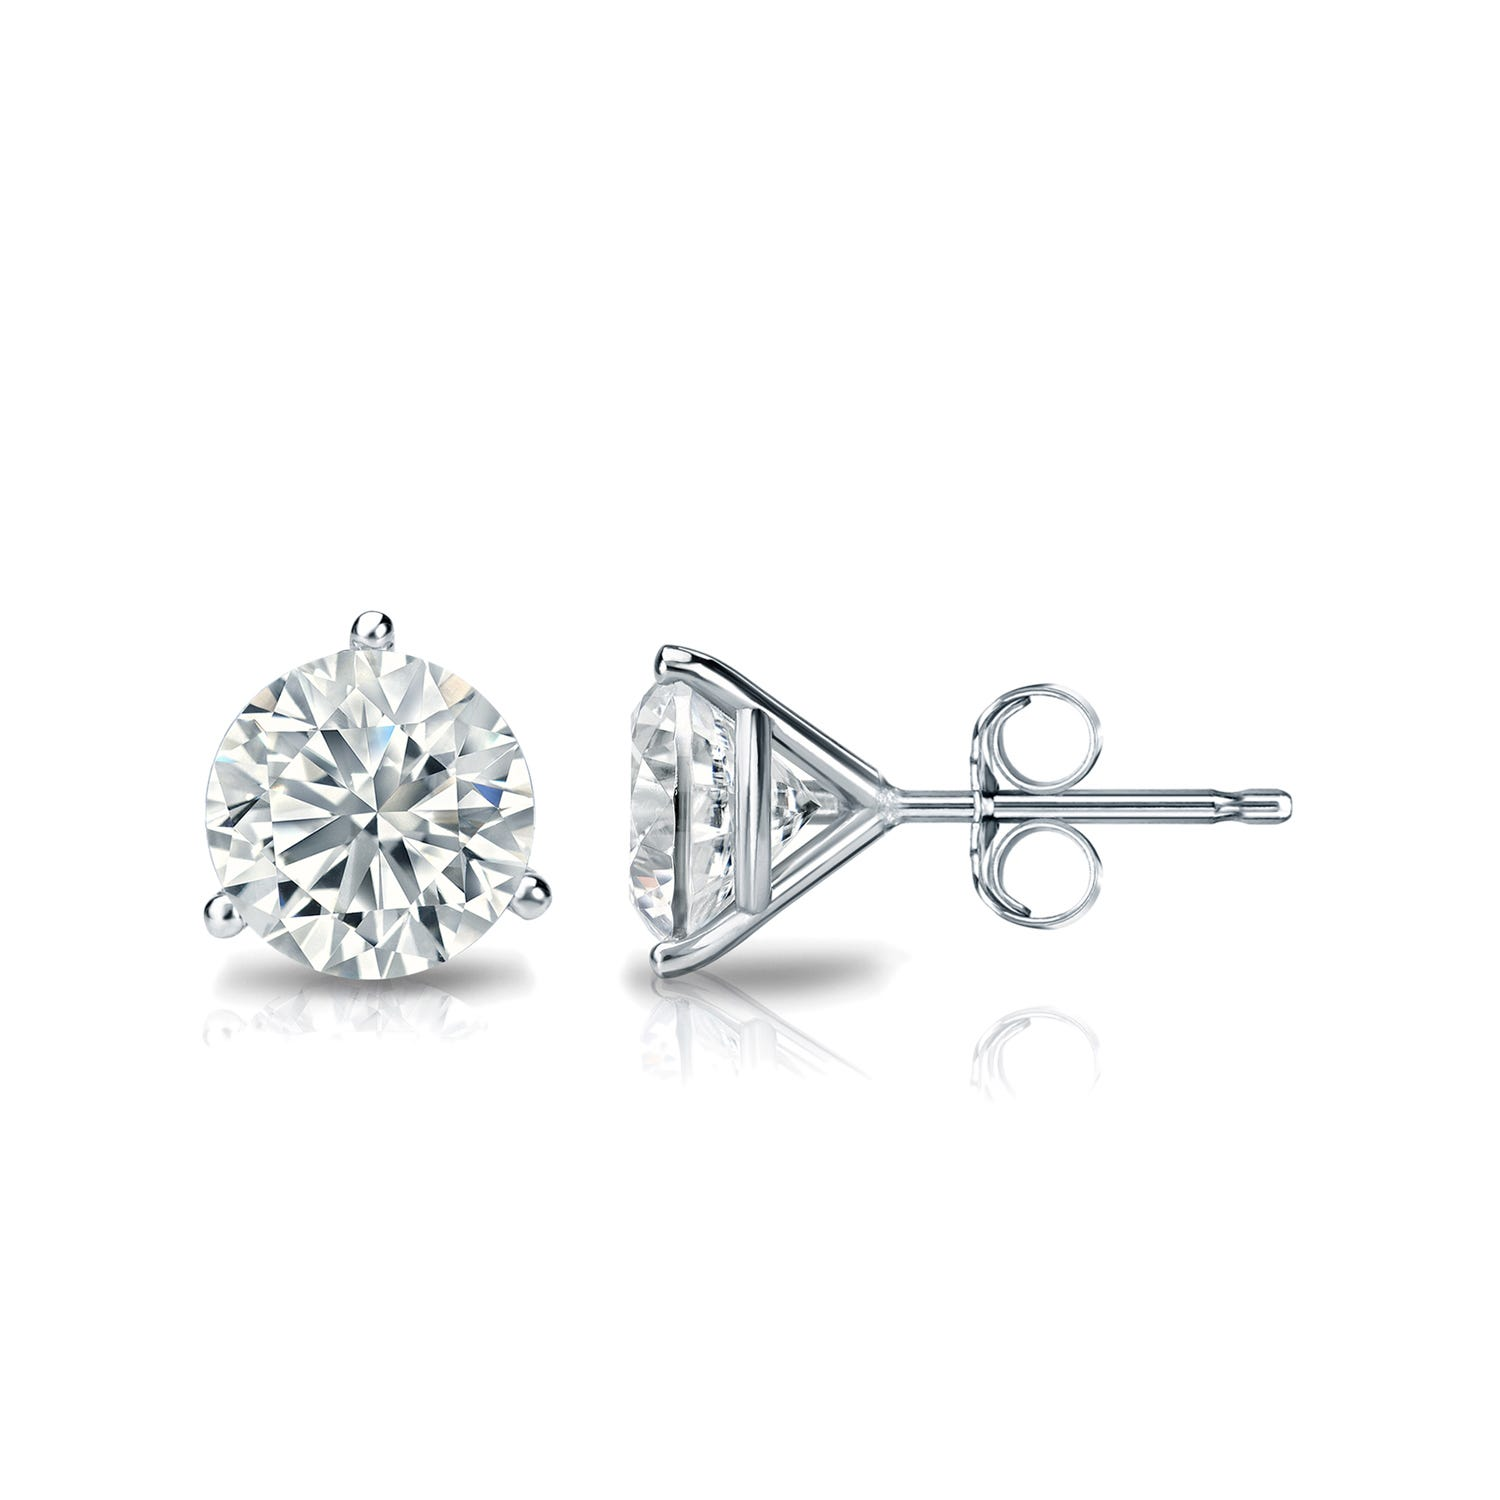 1 CTTW Round Diamond Solitaire Stud Earrings IJ SI2 in Platinum IGI Certified 3-Prong Setting